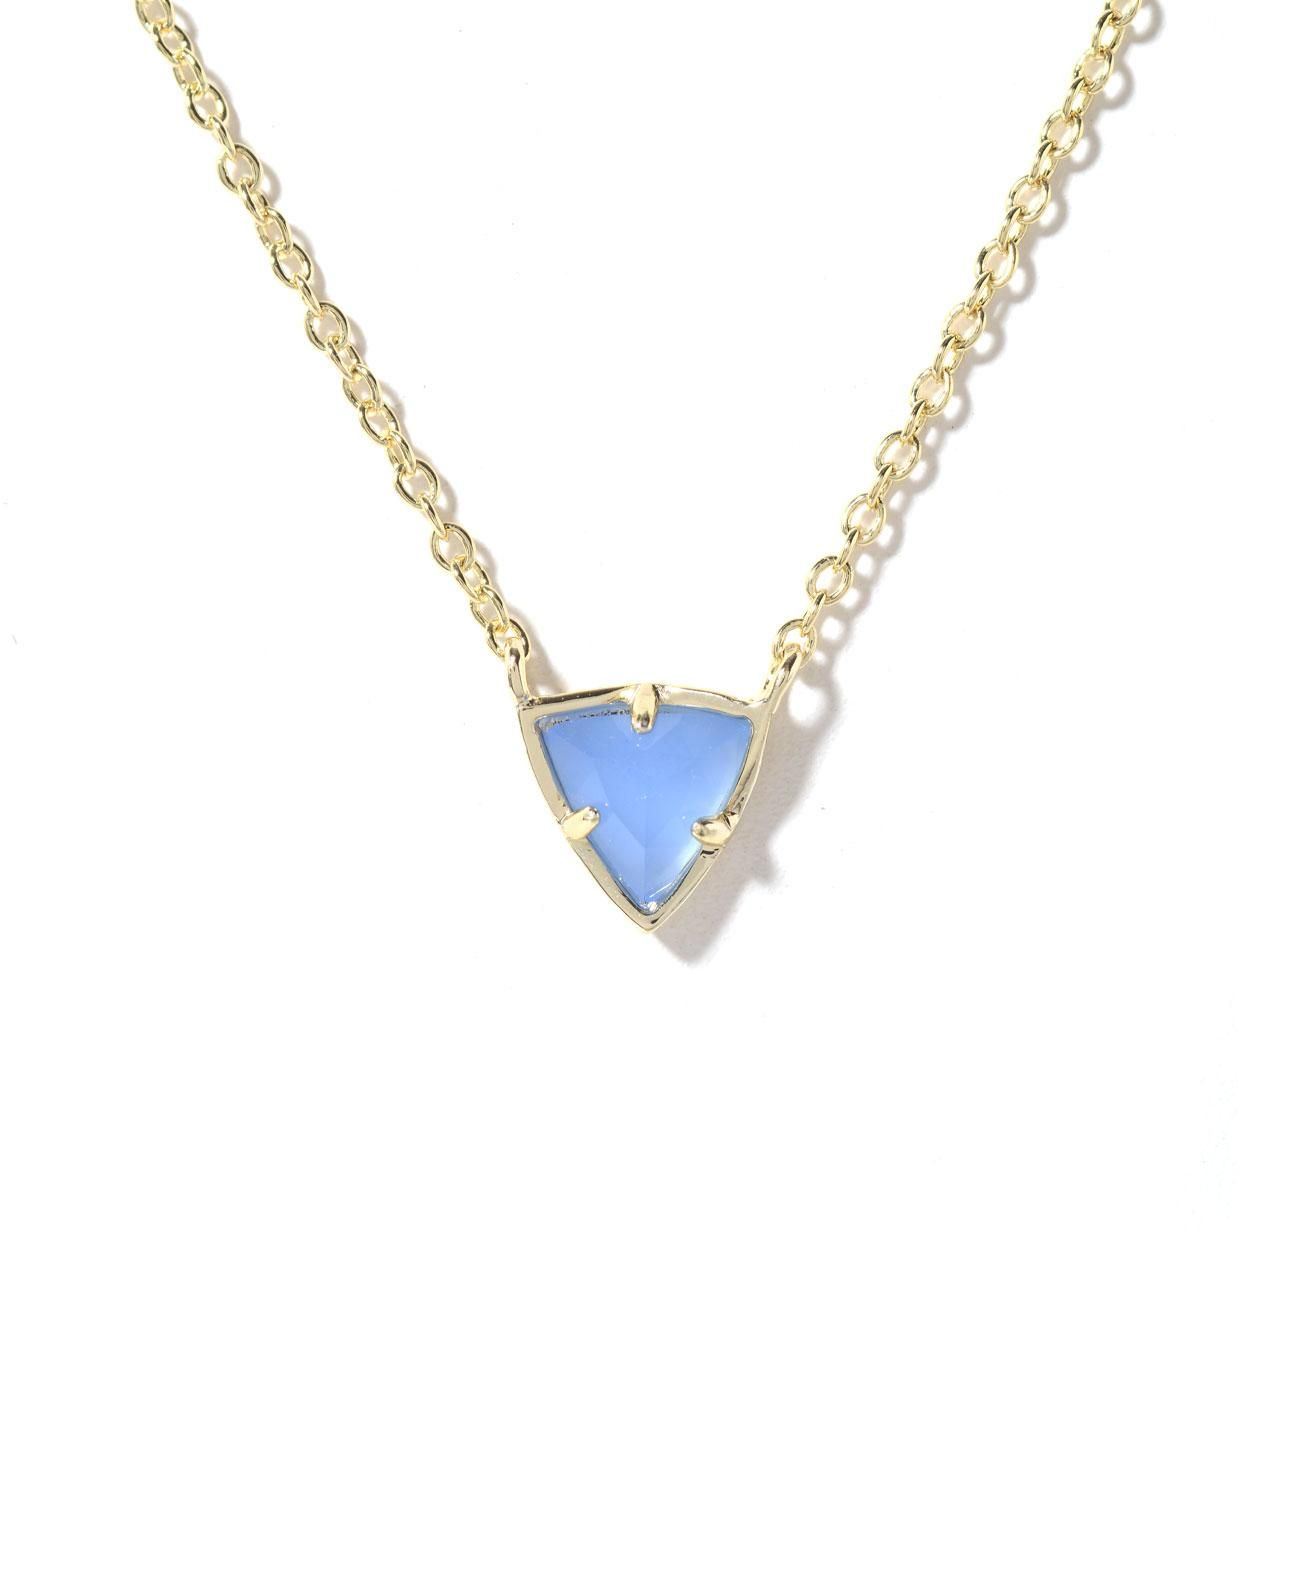 113efefa32d50 Kendra Scott Perry Triangle Pendant Necklace | South Moon Under ...